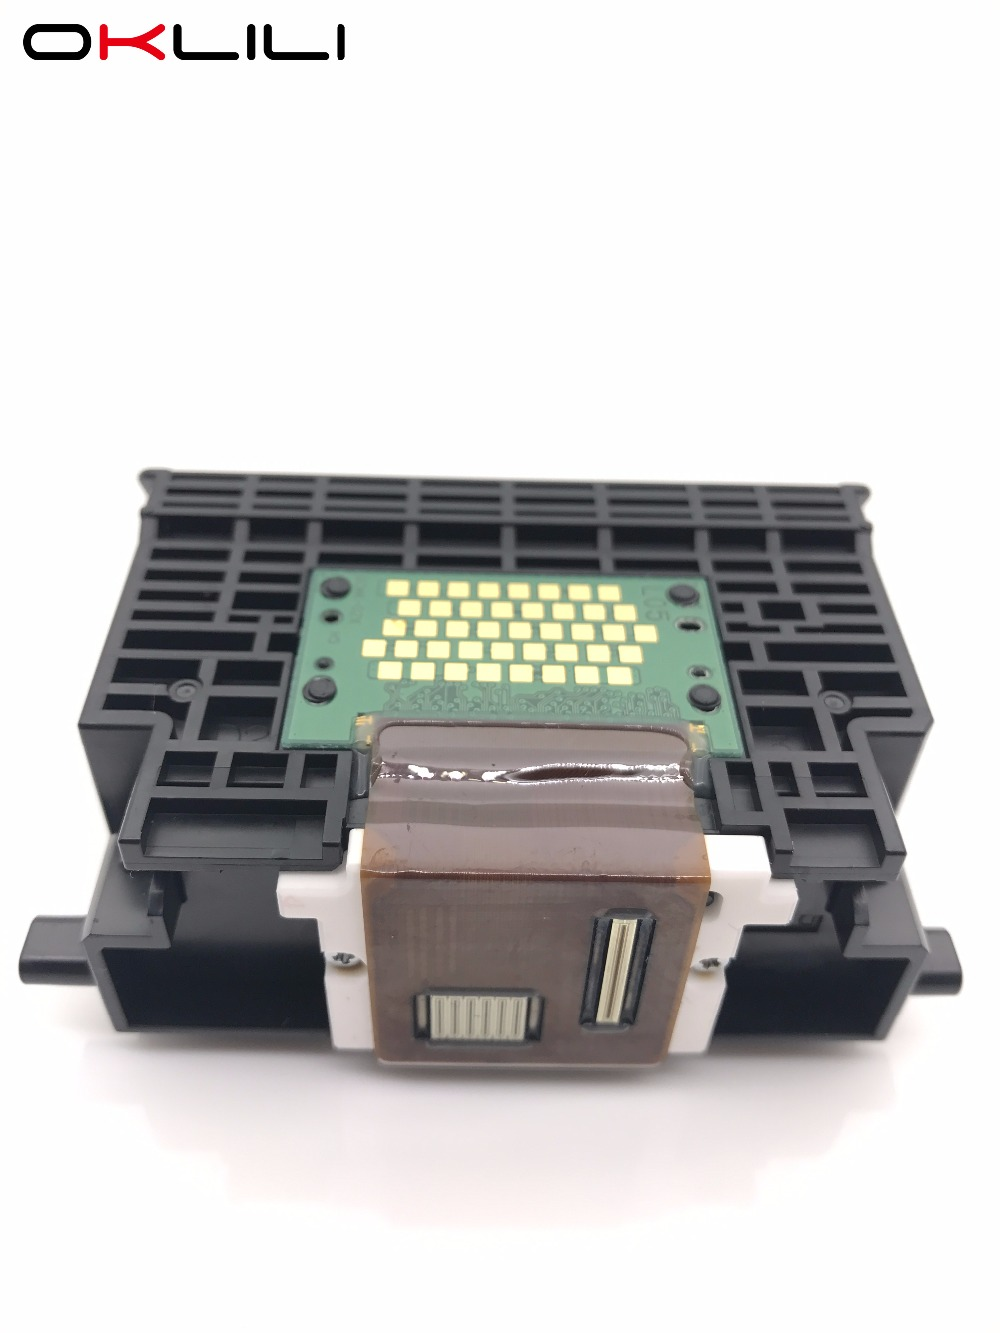 OKLILI ORIGINAL QY6-0059 QY6-0059-000 Printhead Print Head Printer Head for Canon iP4200 MP500 MP530 new original print head qy6 0061 00 printhead for canon ip4300 ip5200 ip5200r mp600 mp600r mp800 mp800r mp830 plotter